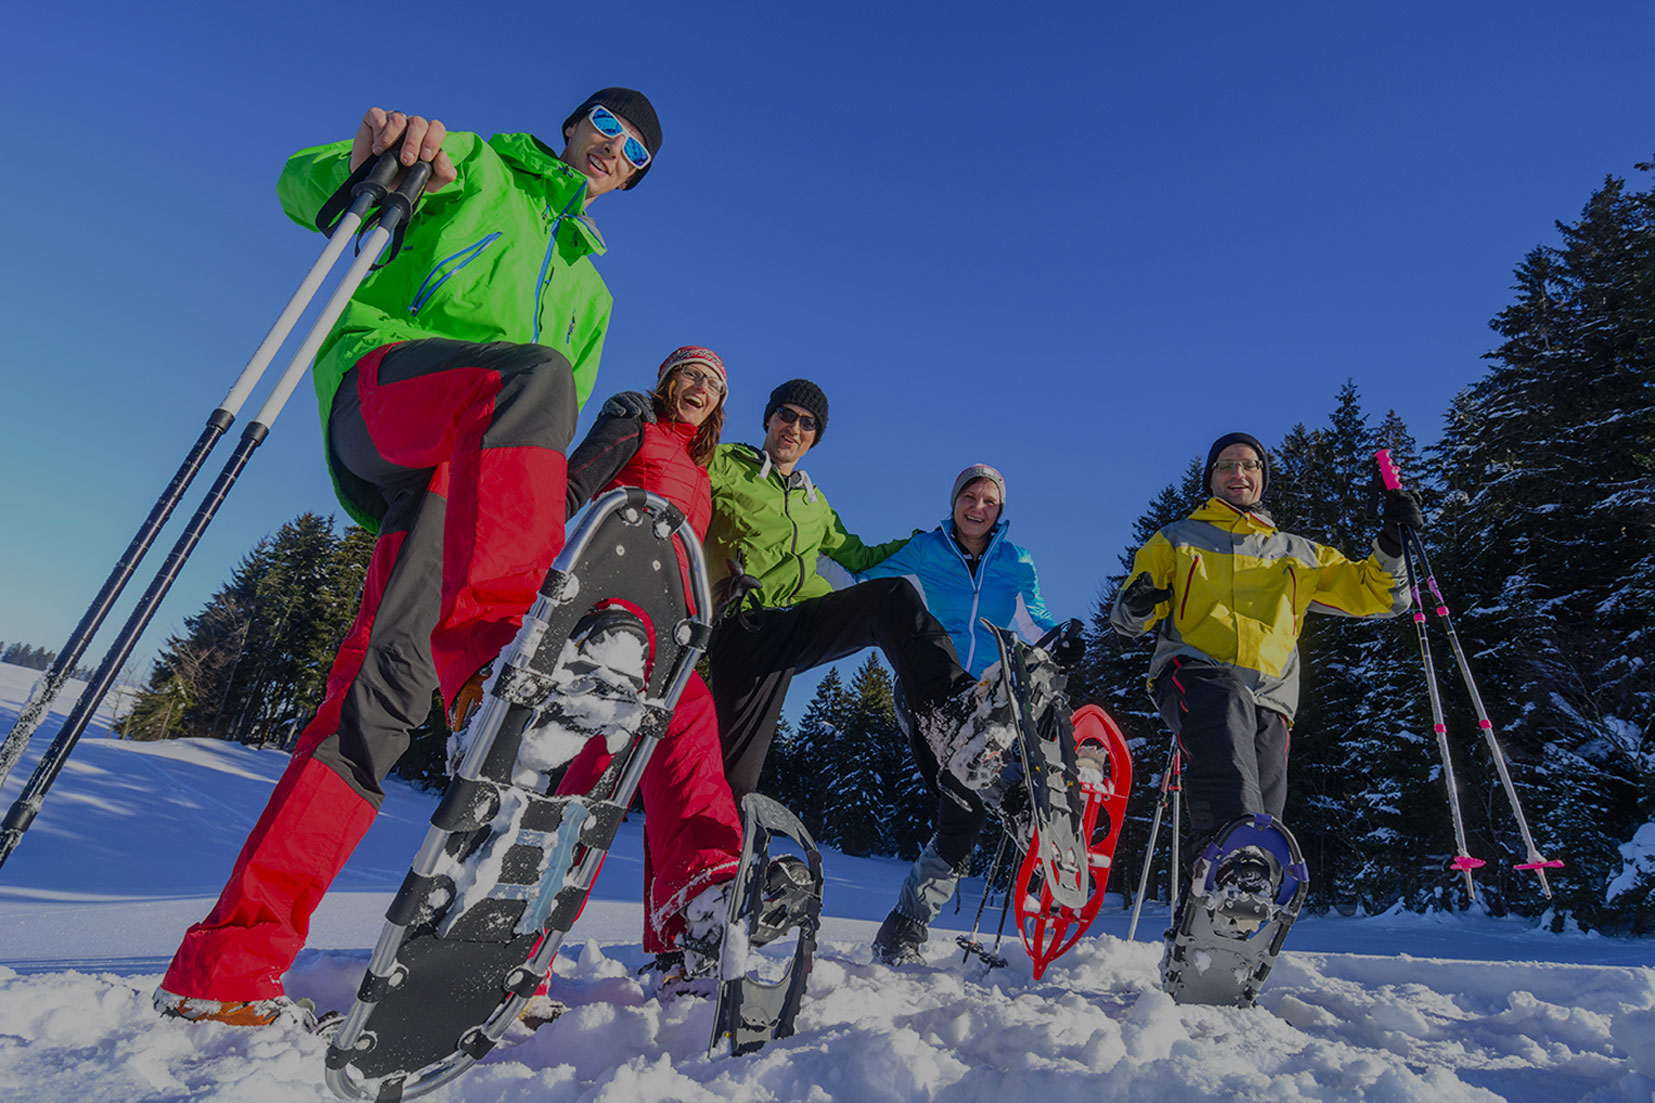 A group of people in bright winter gear raising their snow shoes up from the snow.